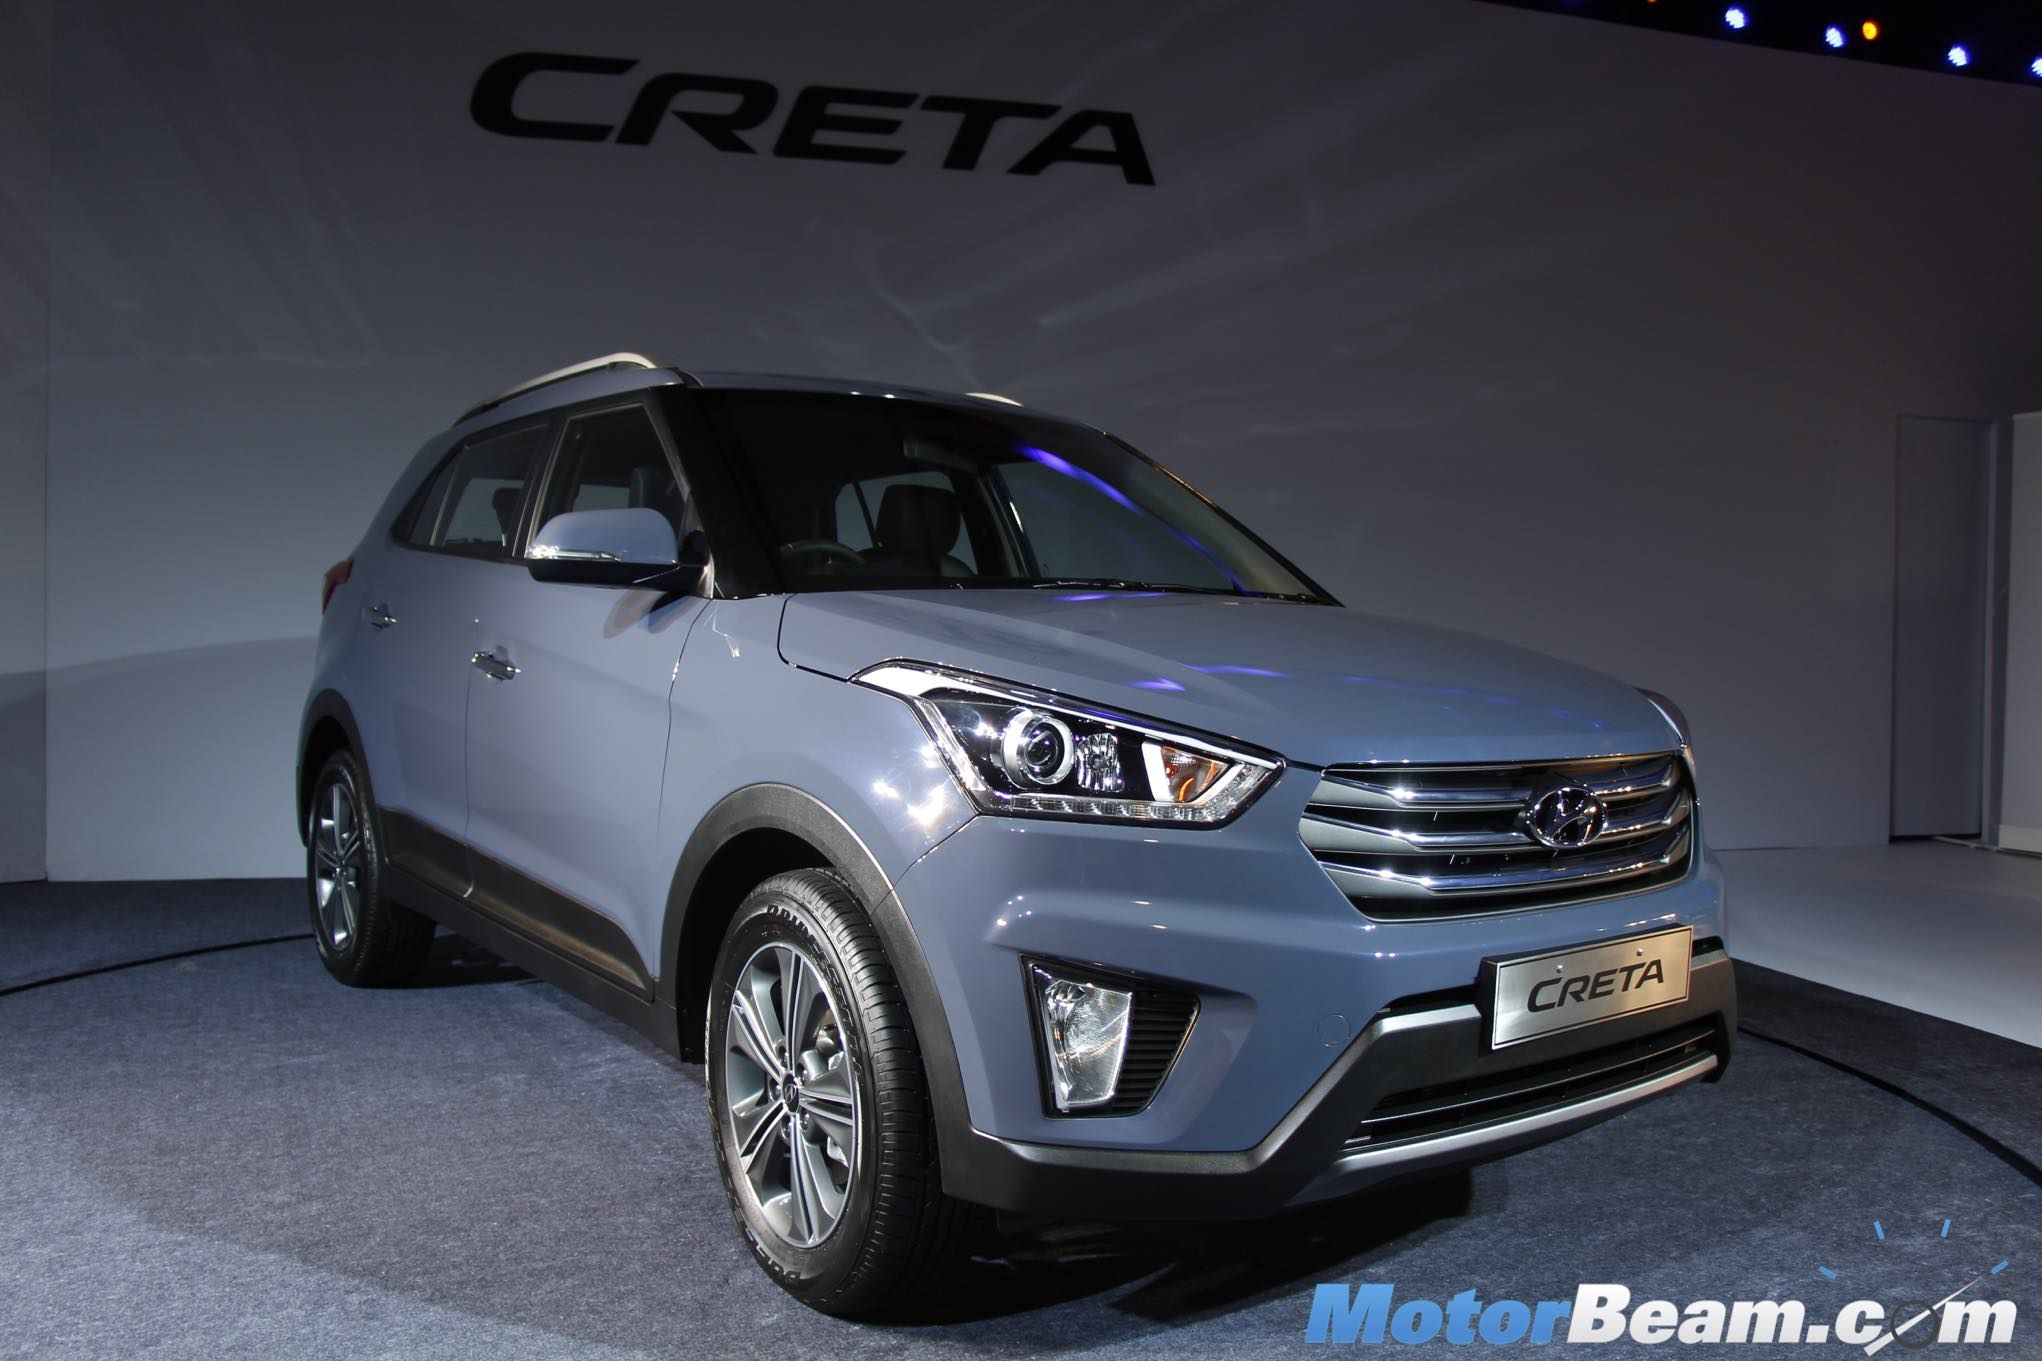 2015 Hyundai Creta Officially Launched, Prices Start At Rs